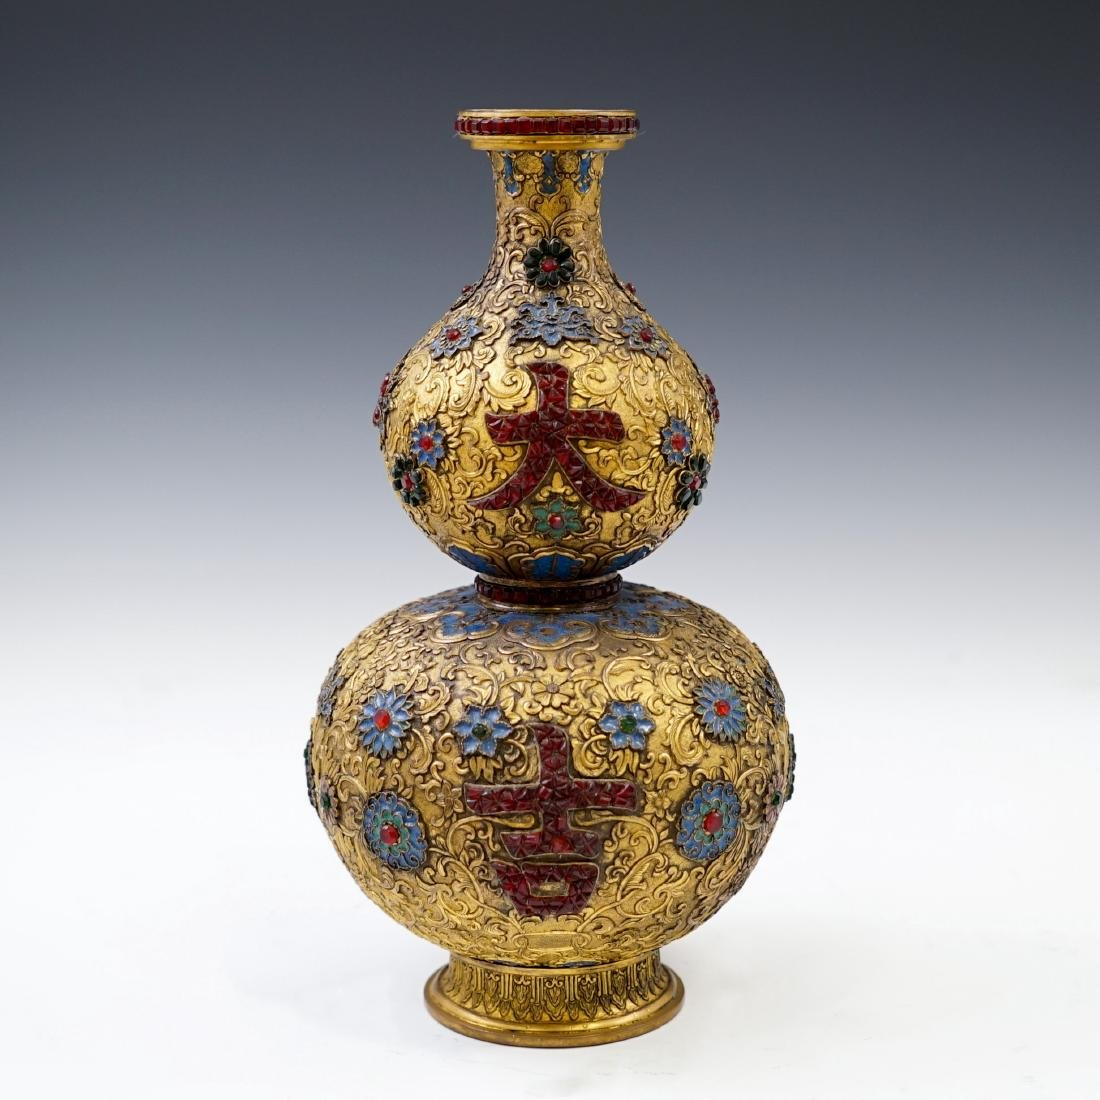 GILT BRONZE ENAMEL INLAID DOUBLE GOURD VASE